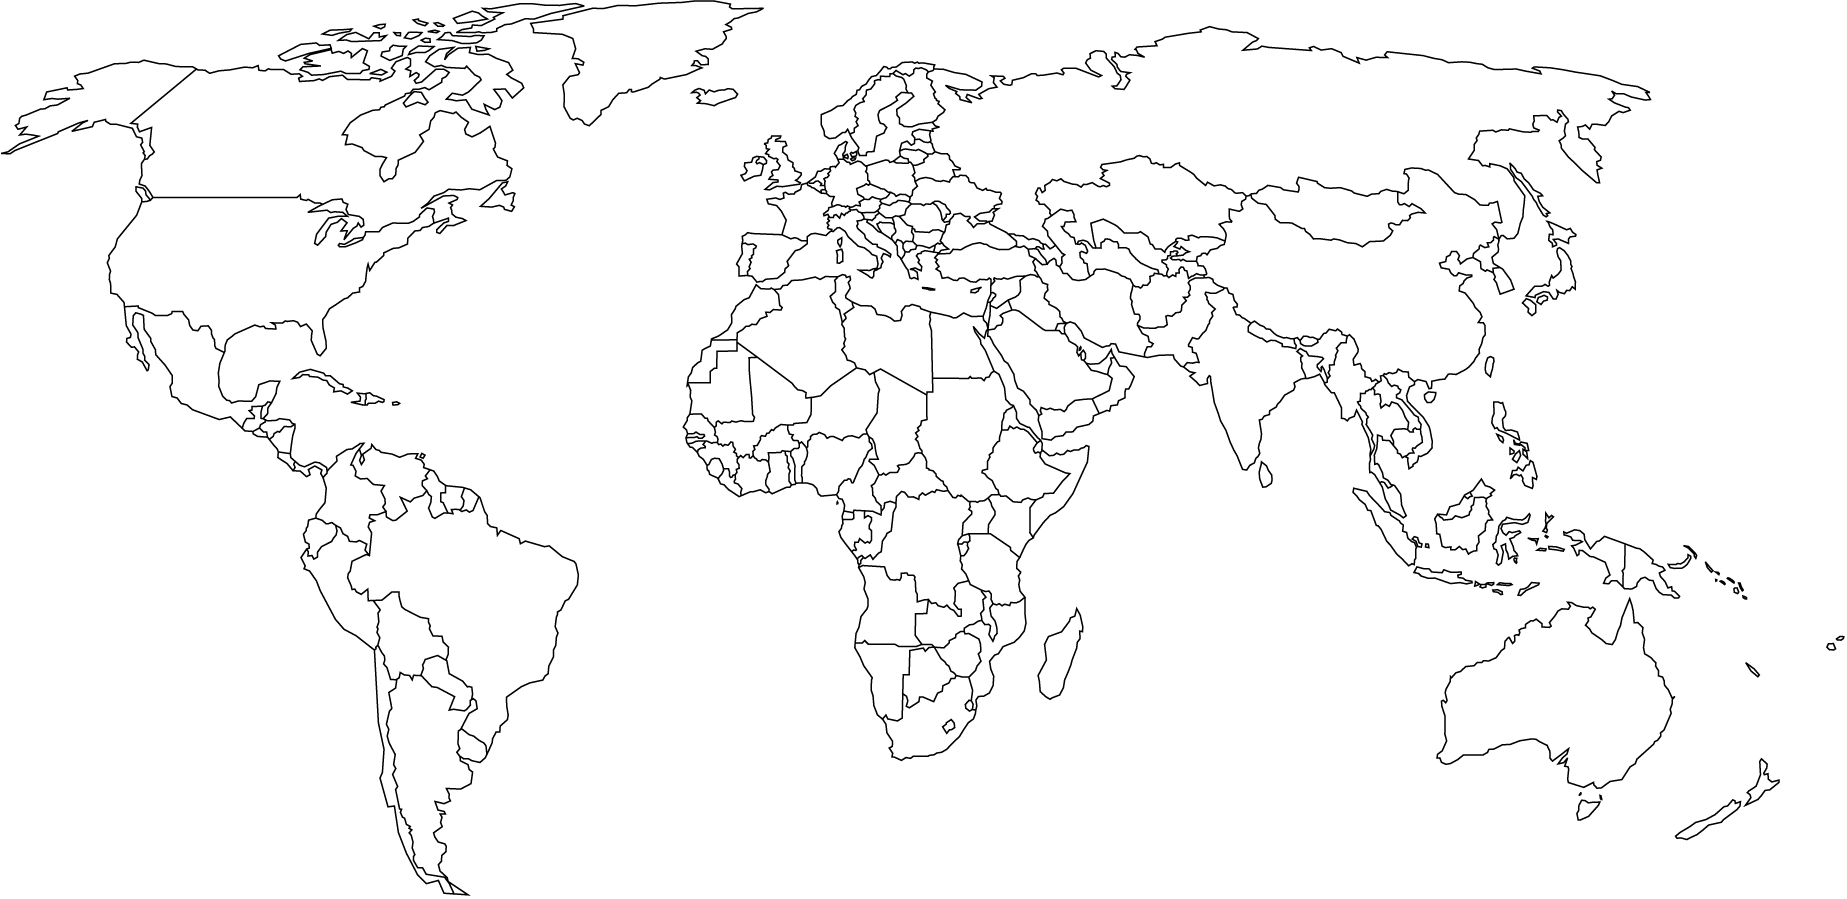 coloring map of the world it be cool to have my tattoo like this and then color in the world map of coloring